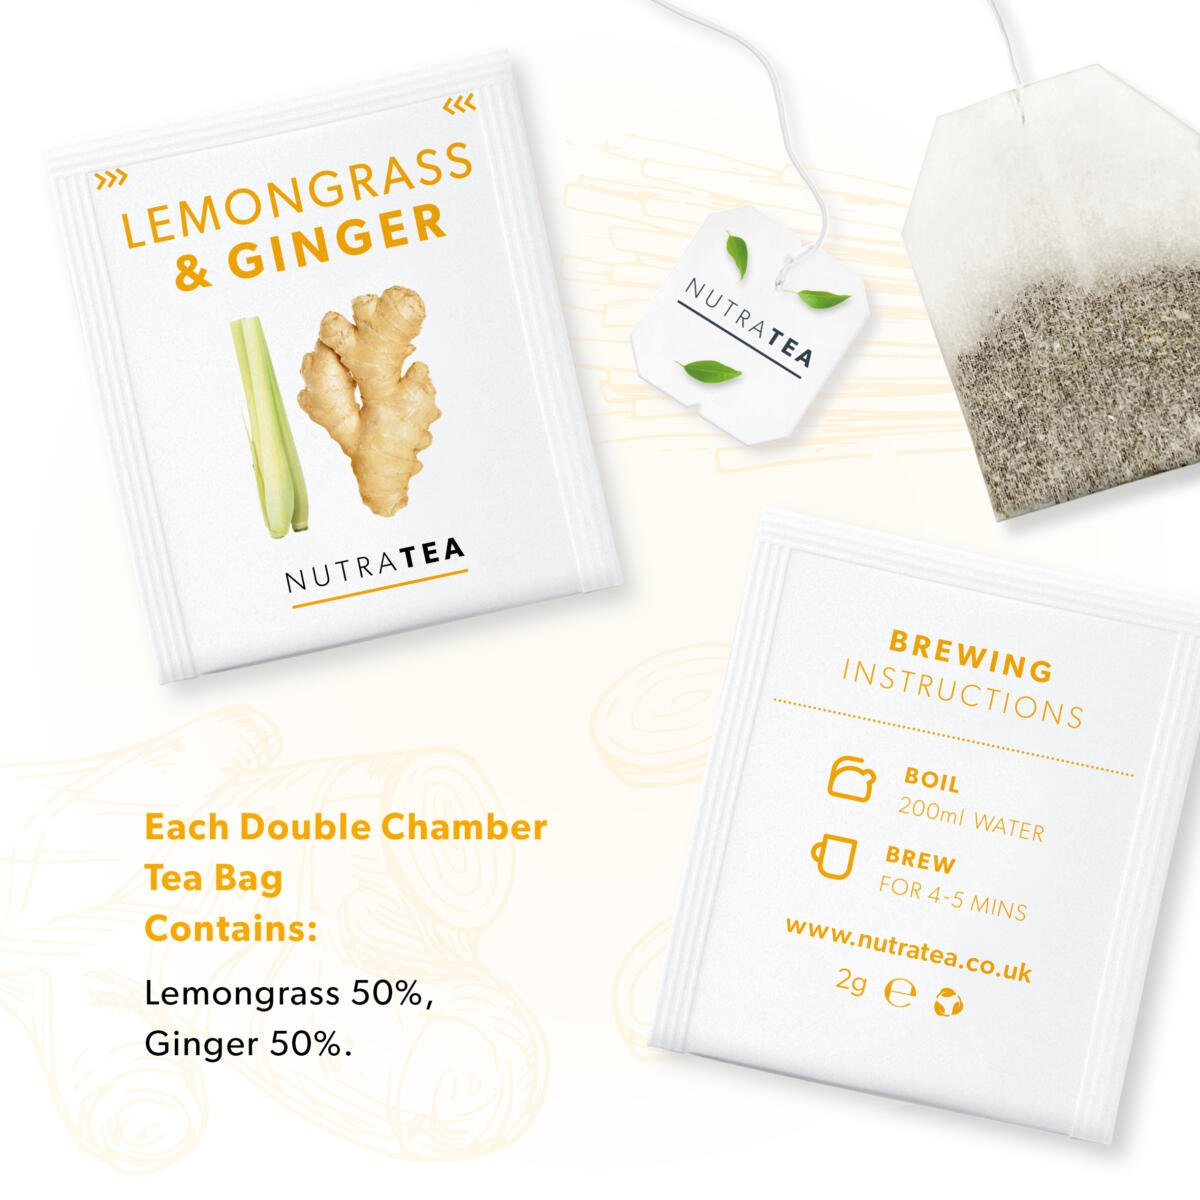 LEMONGRASS & GINGER_SUPPORT_PAGES5